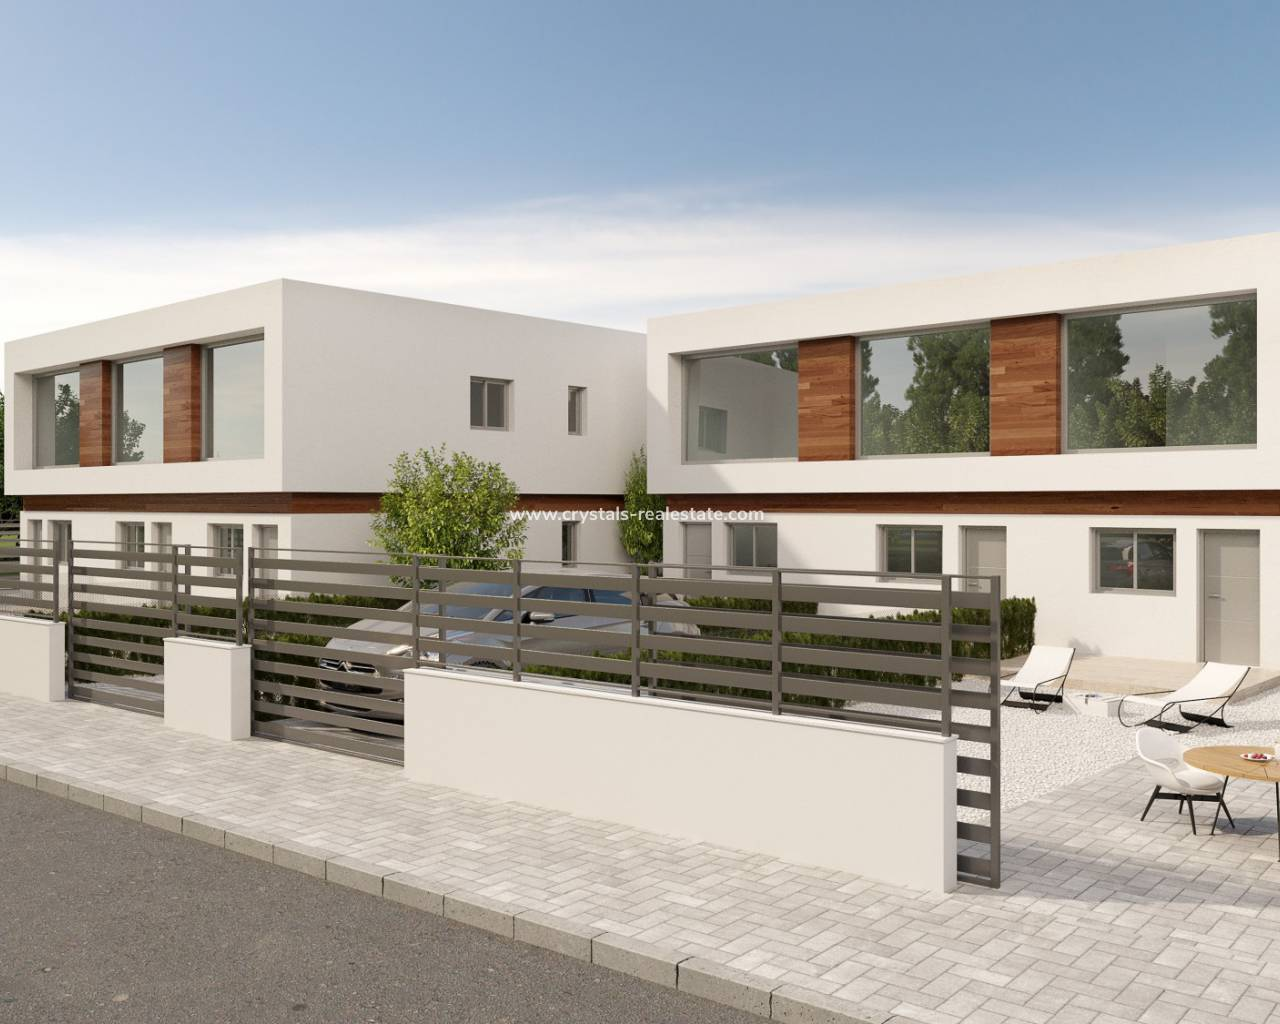 Townhouse - New Build - Orihuela Costa - Villamartín